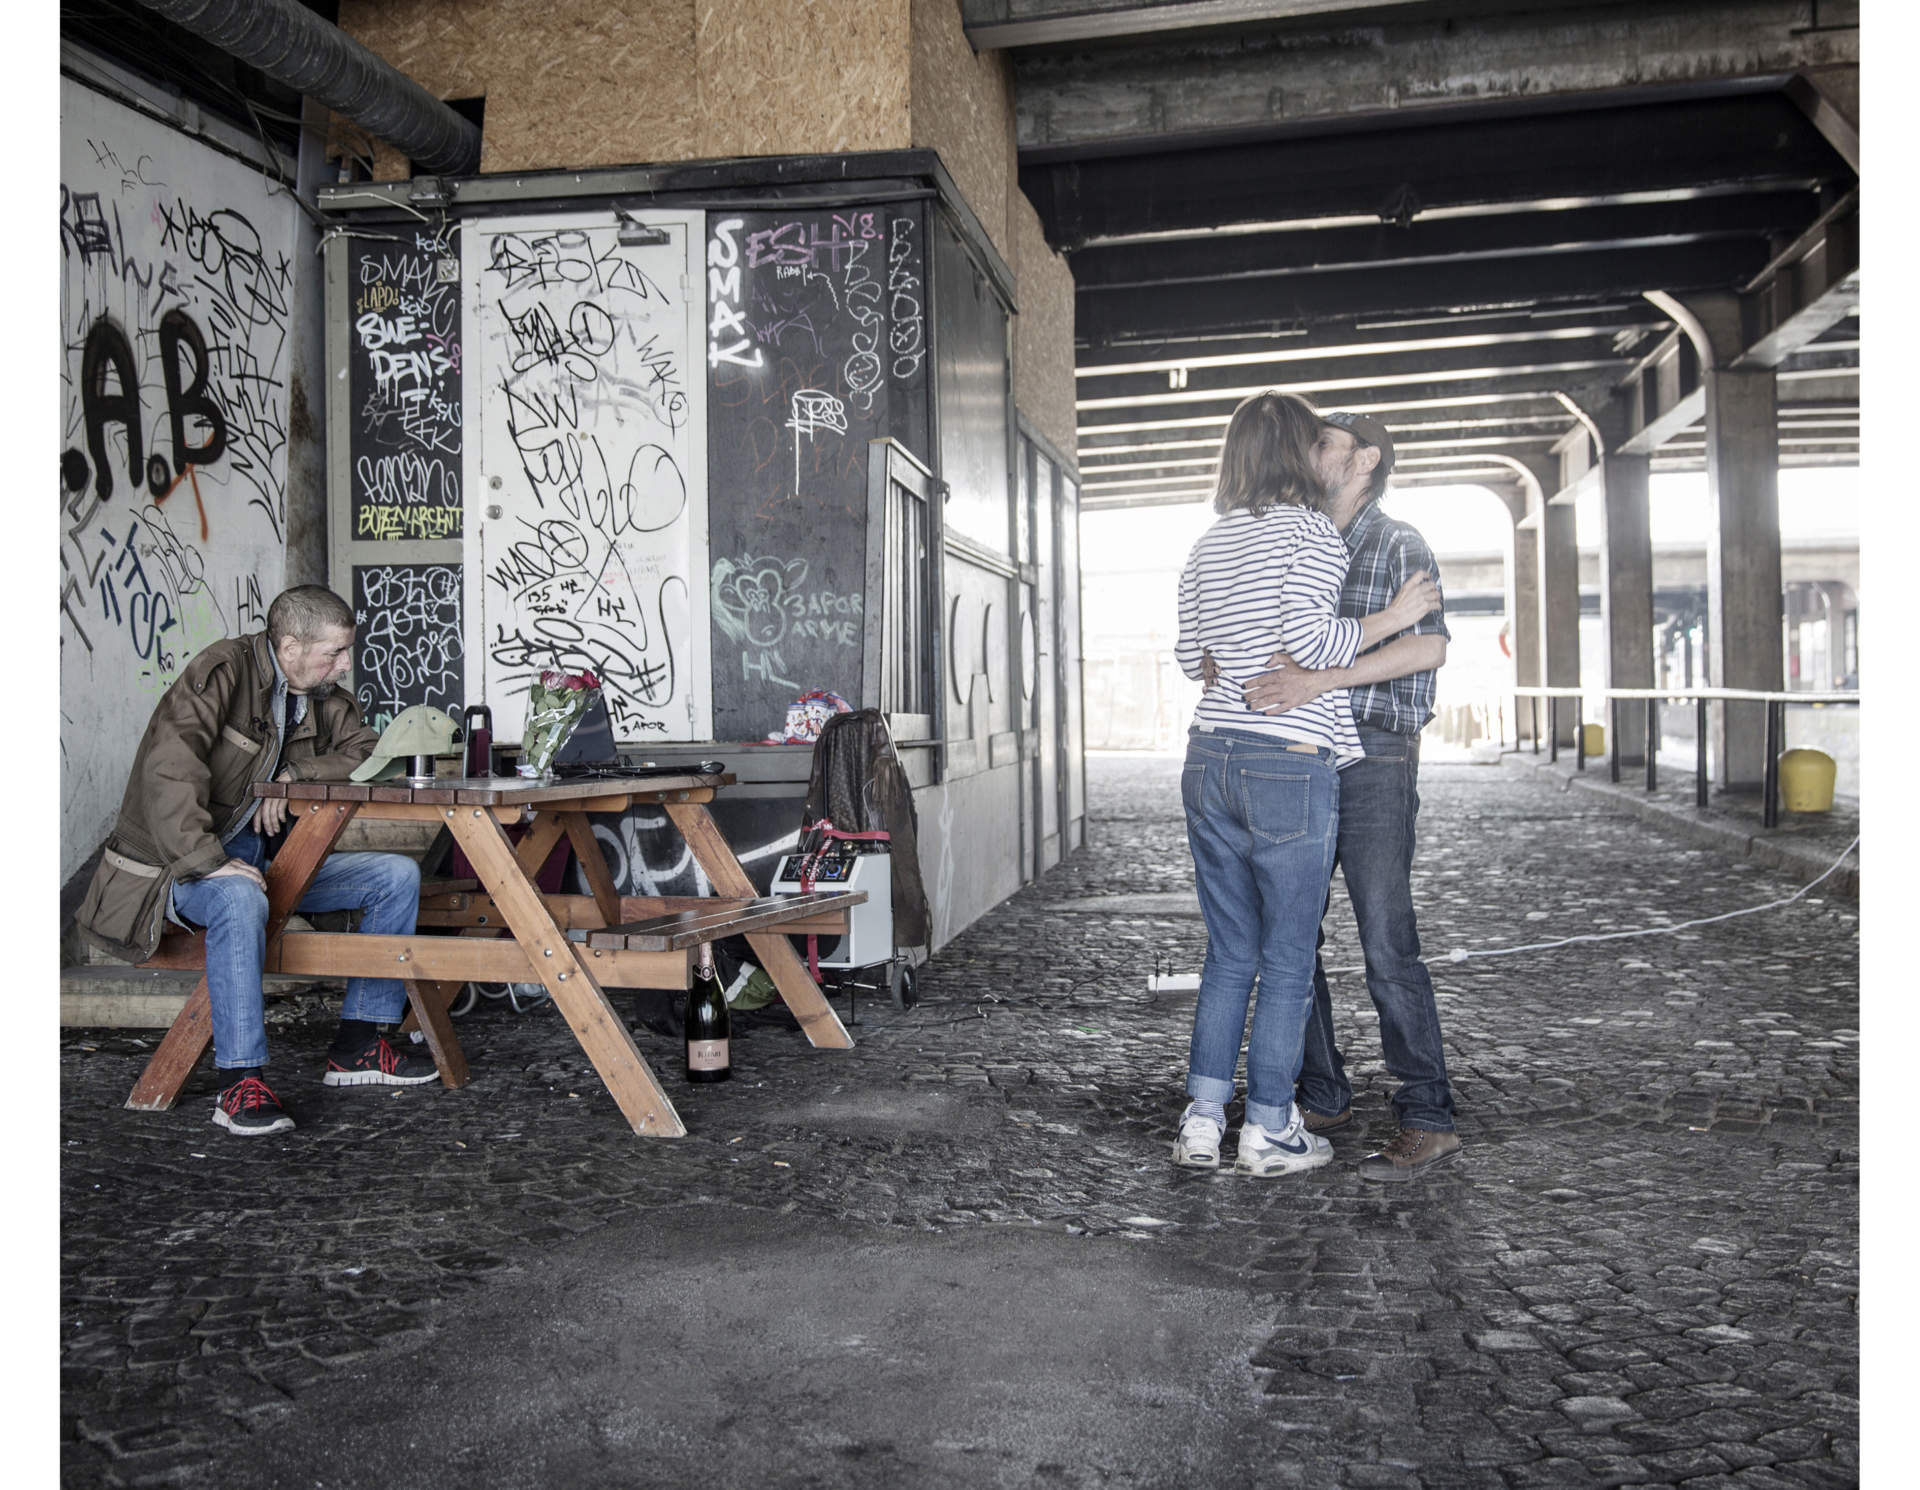 """It's Mattes birthday and the two friends celebrates together with Pekkas girlfriend at their favourite spot under a bridge in Stockholm. Pekka saved his money for months to buy a 30 min helicopter tour for Matte, something he had wished for his entire life. """"Now I can die happy"""" said Matte."""